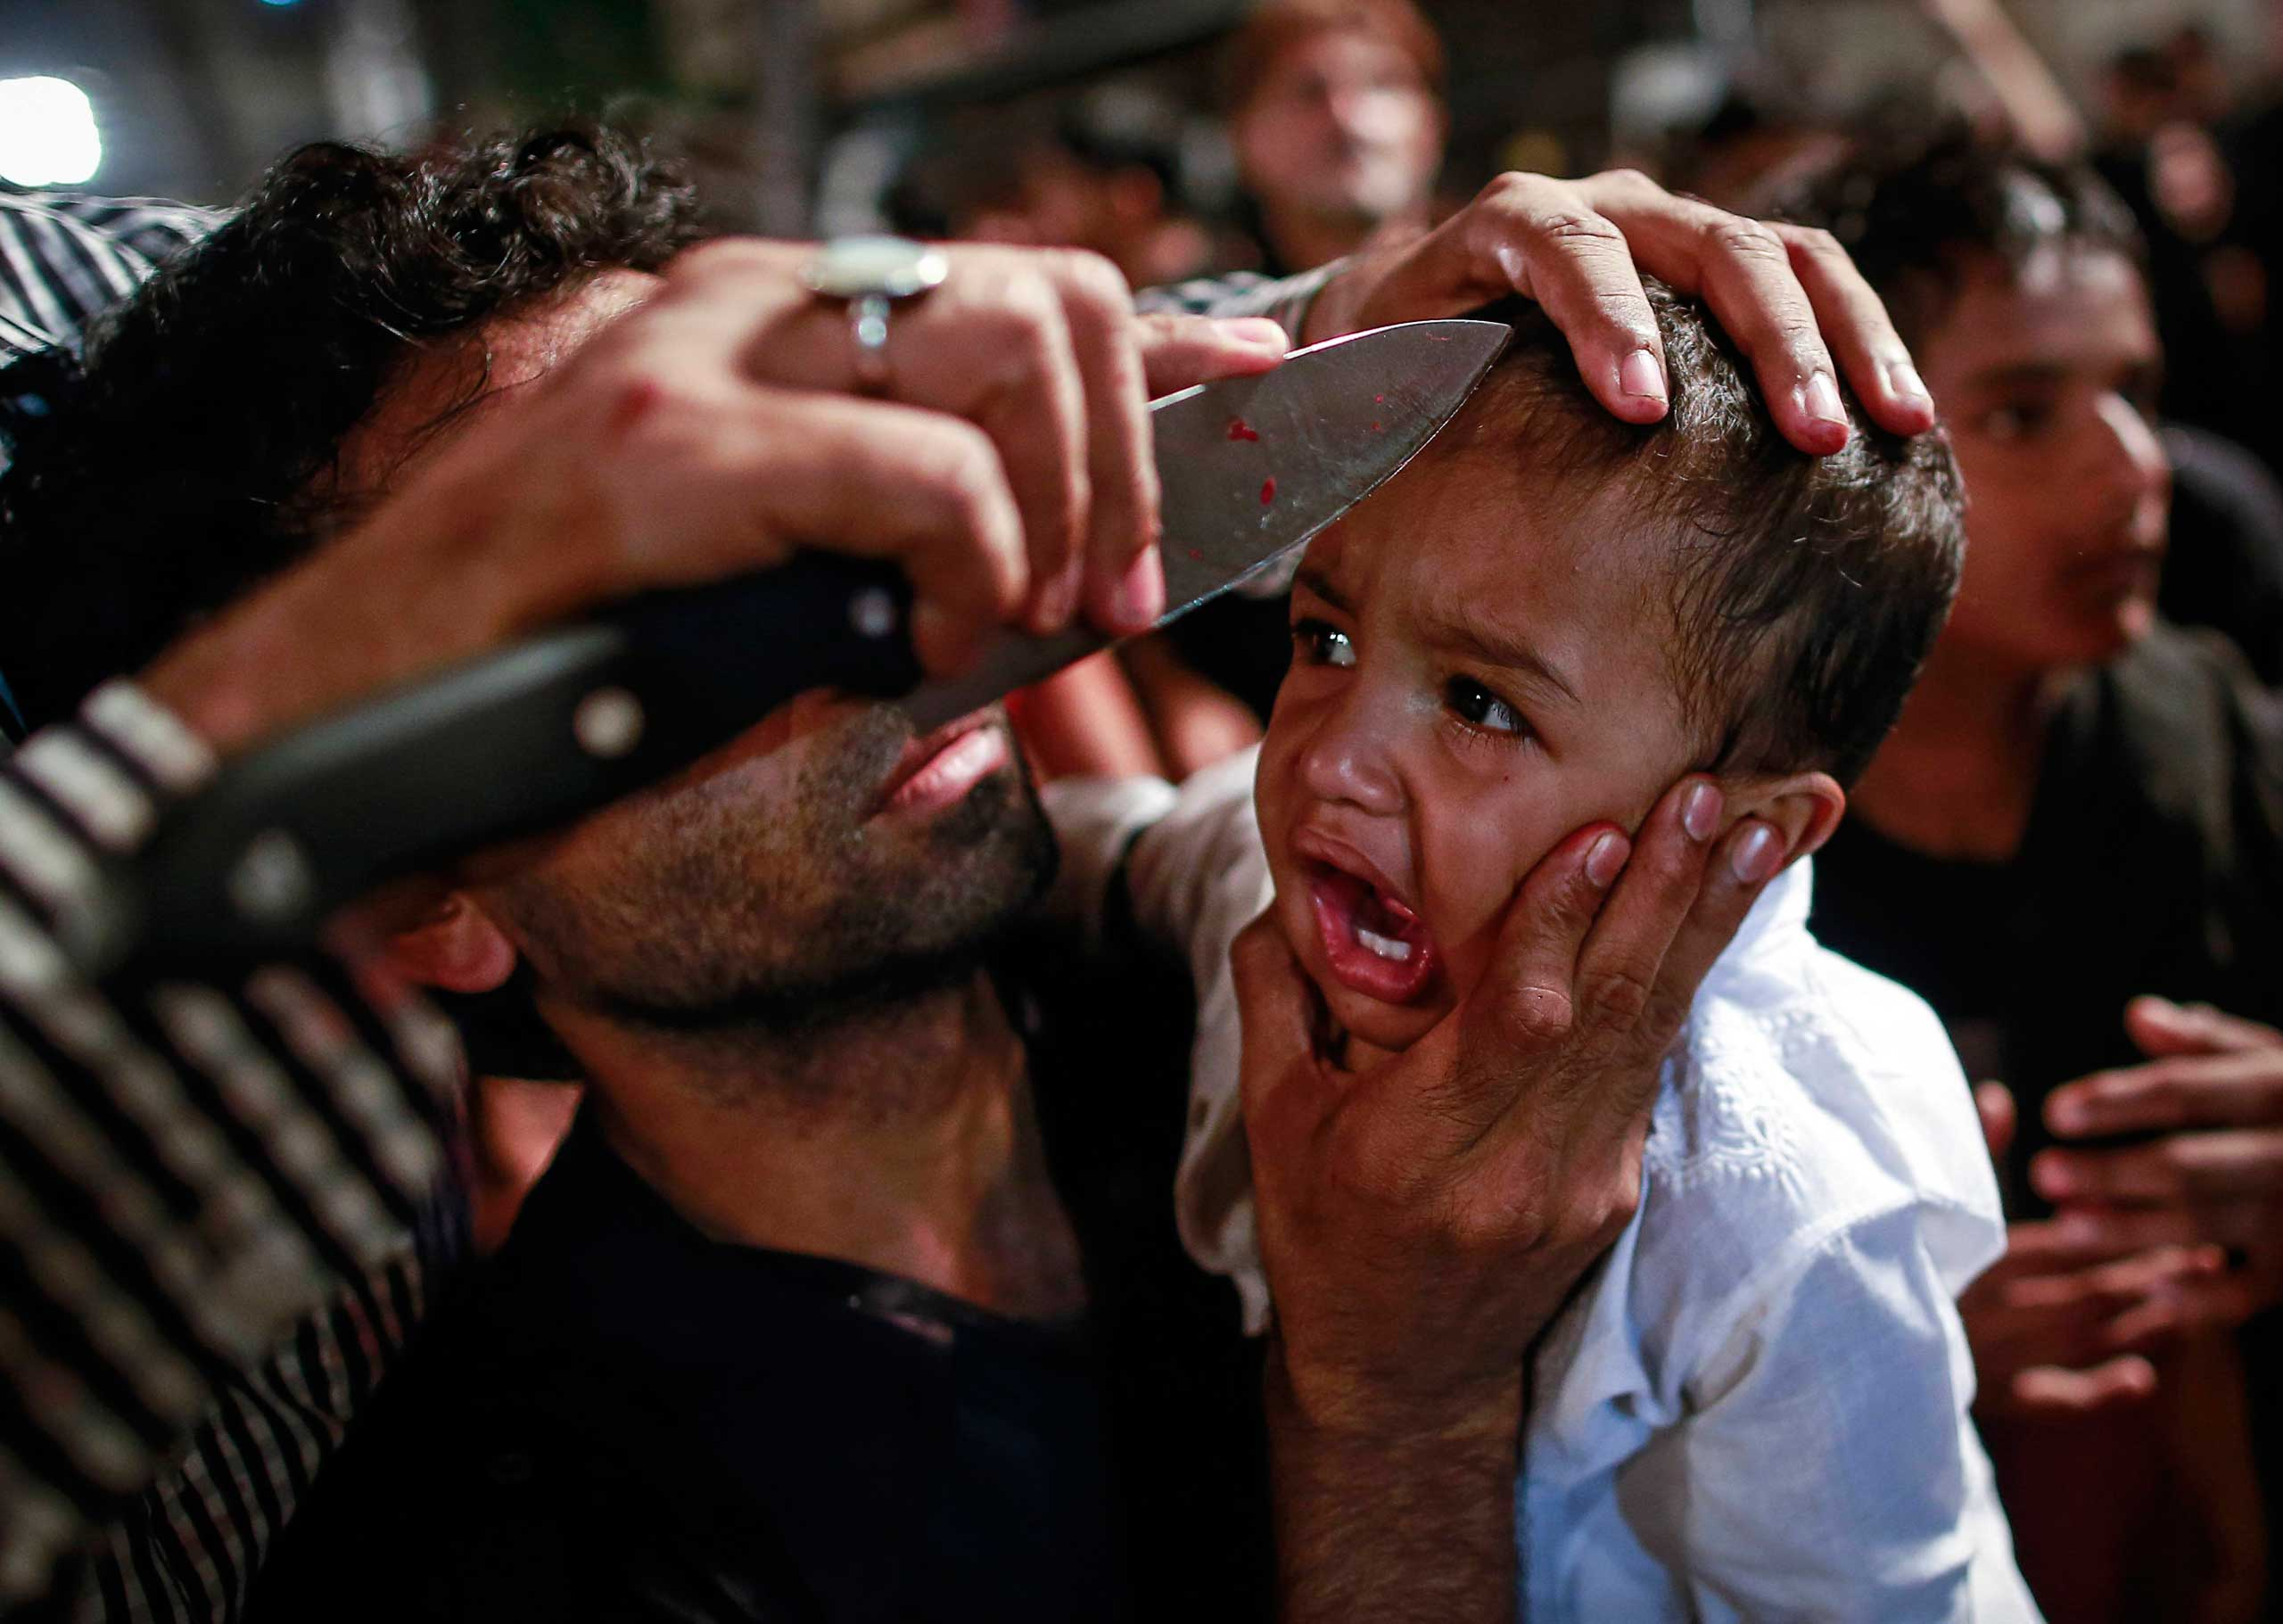 Nov. 3, 2014. A Shiite Muslim has his child gashed with a knife during a Muharram procession ahead of Ashoura in Mumbai.